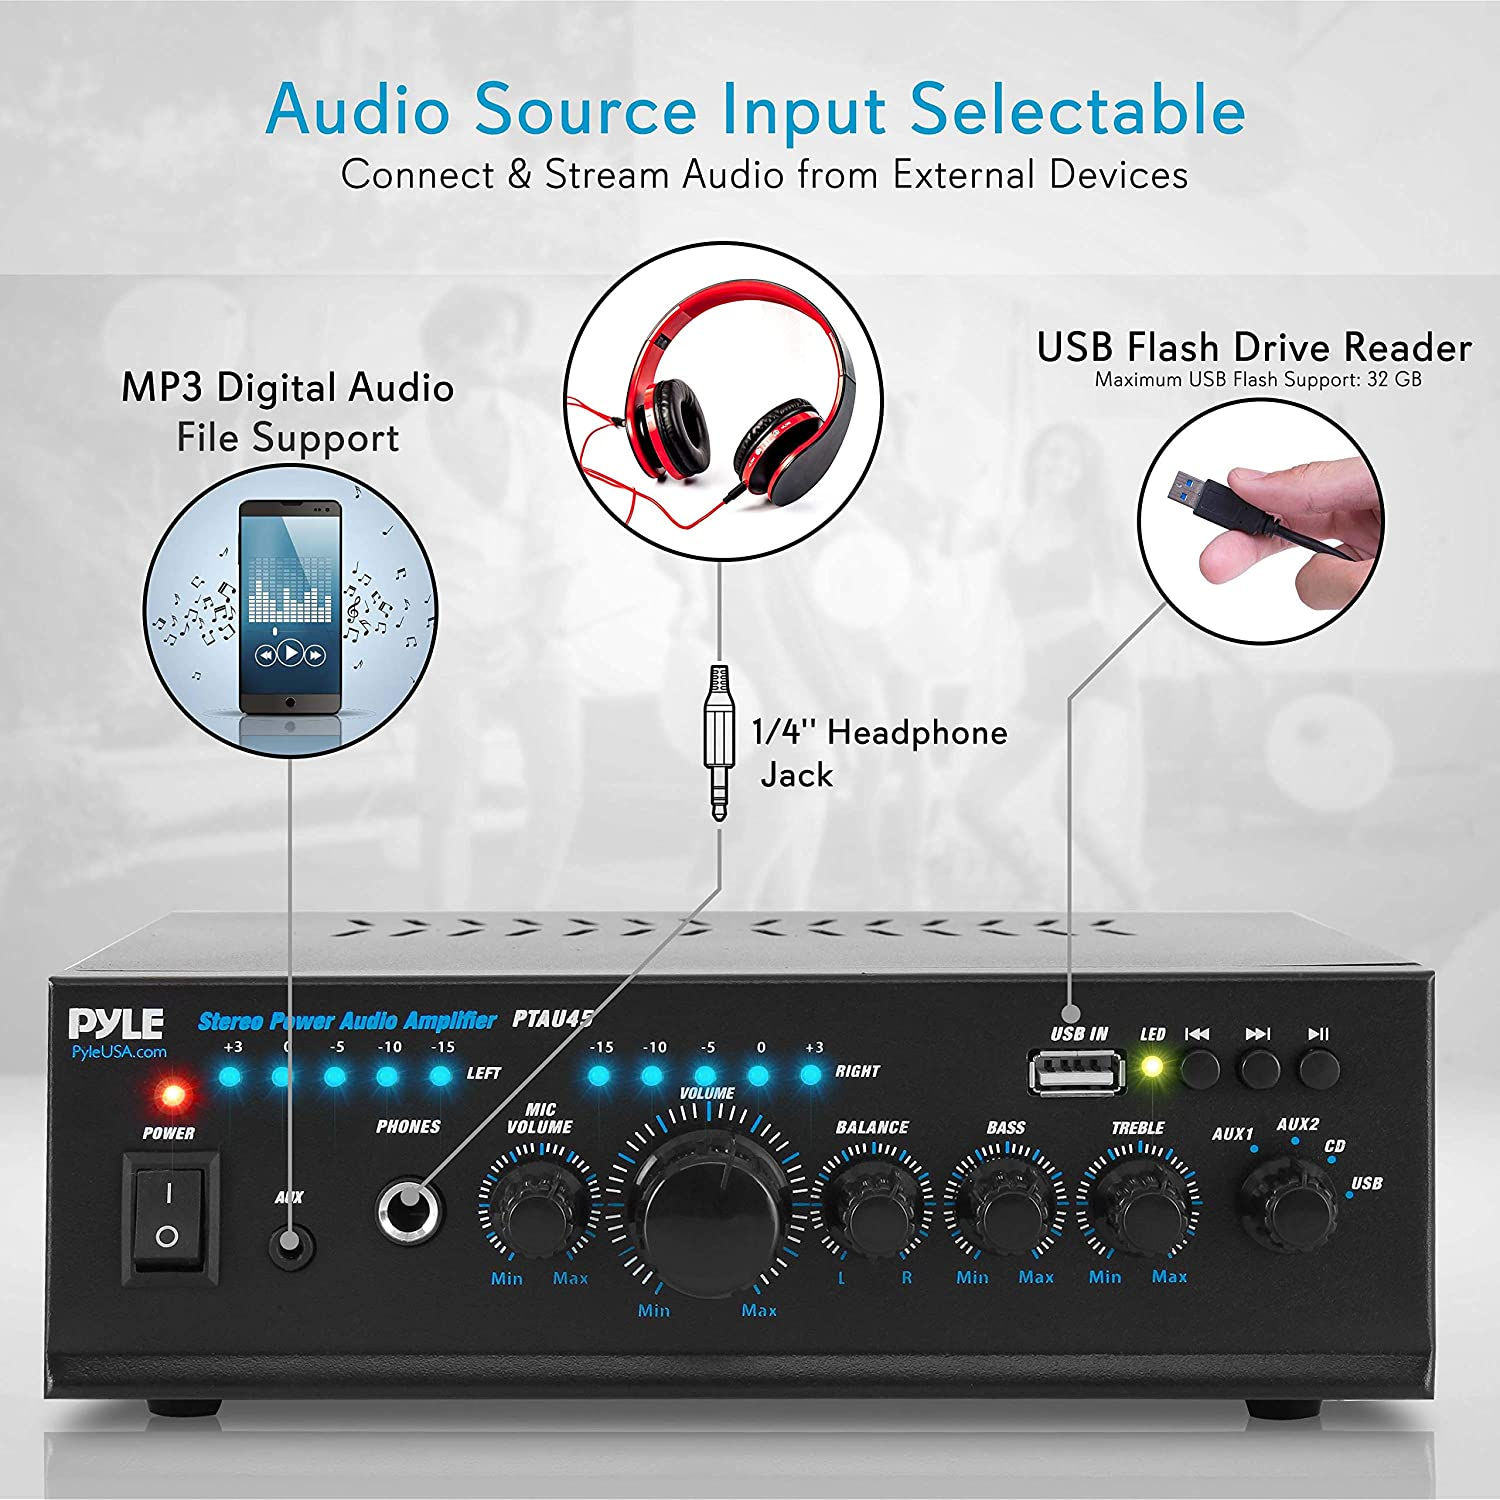 PyleHome PTAU45 2x 120W Stereo Power Amplifier with USB CD and Mic Input AUX